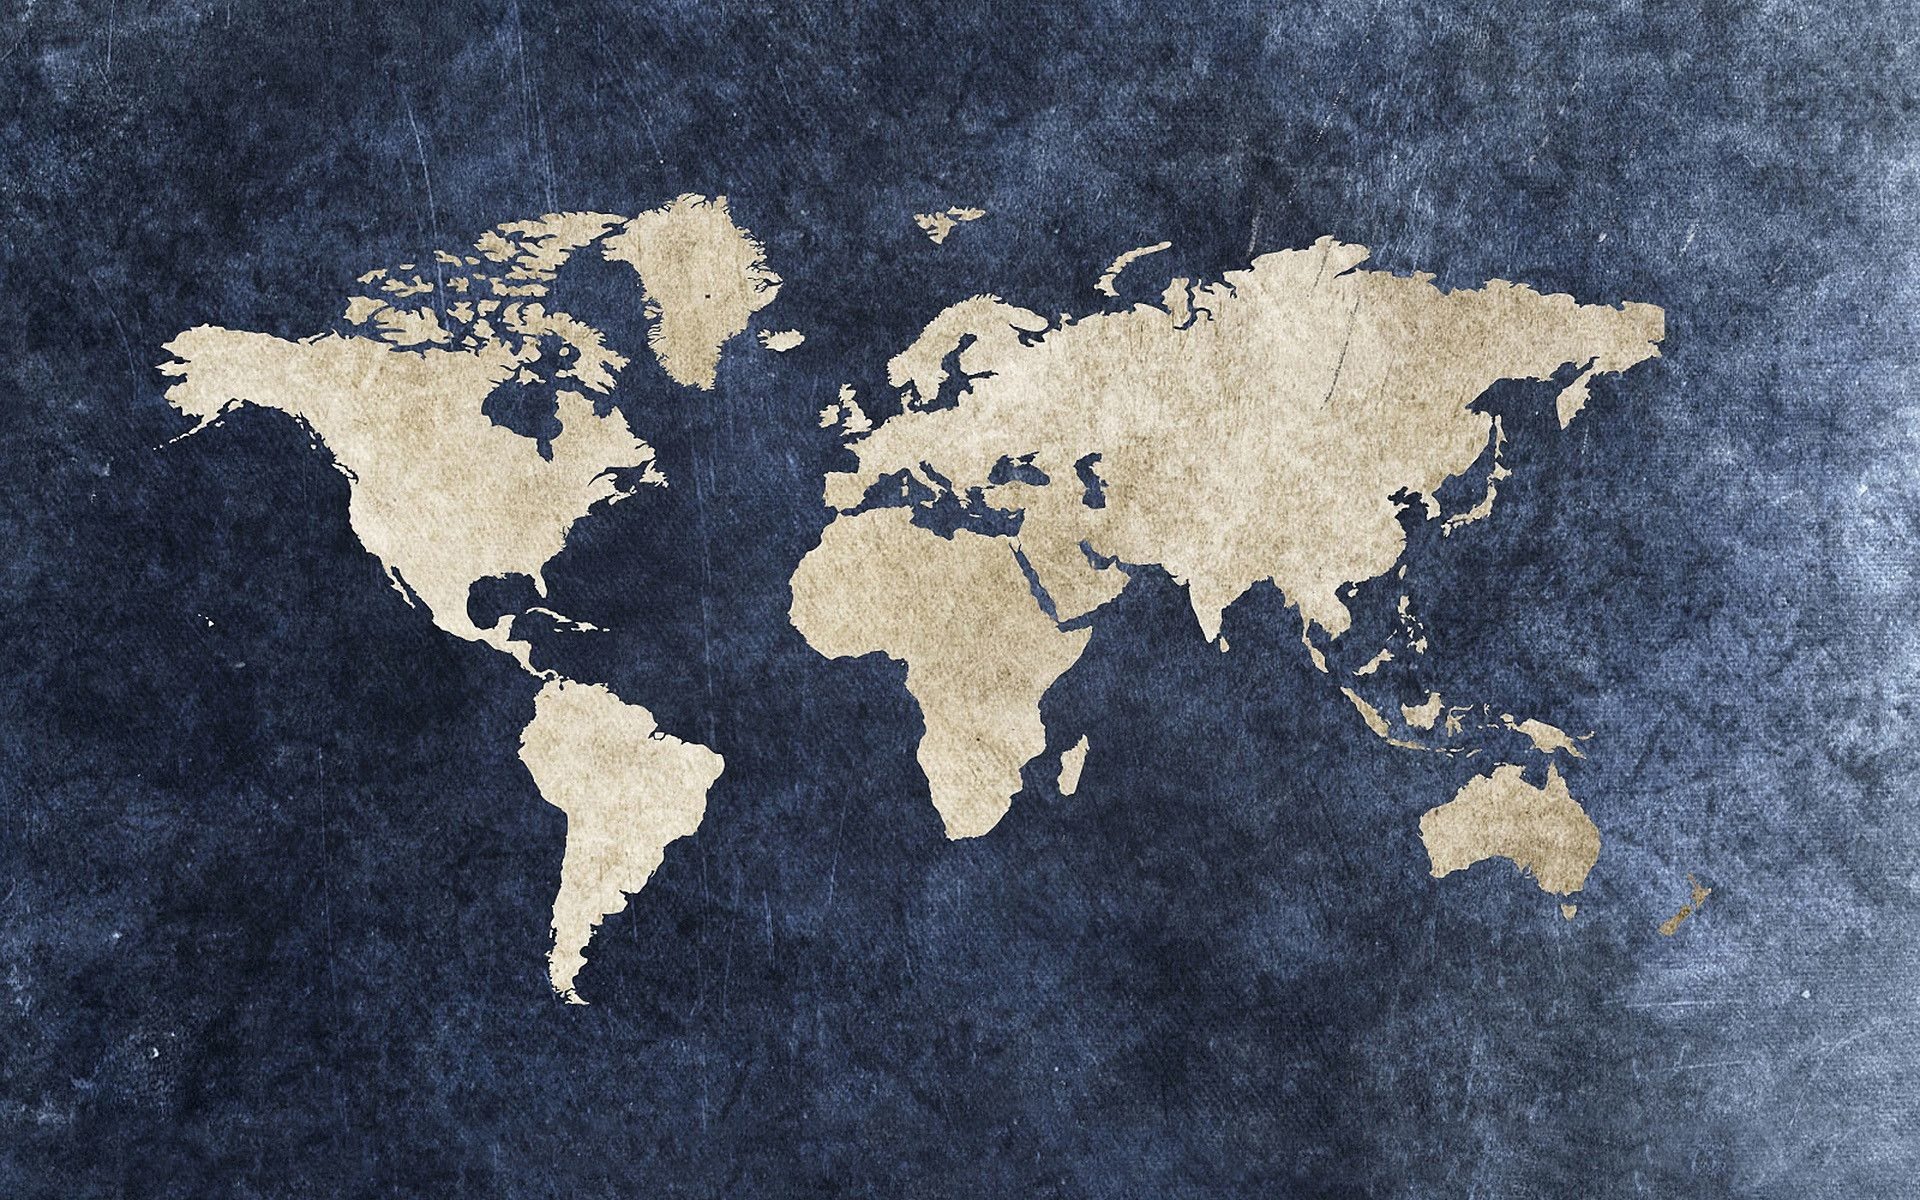 World map computer wallpaper 62 images 1920x1200 world map wallpapers full hd wallpaper search gumiabroncs Choice Image